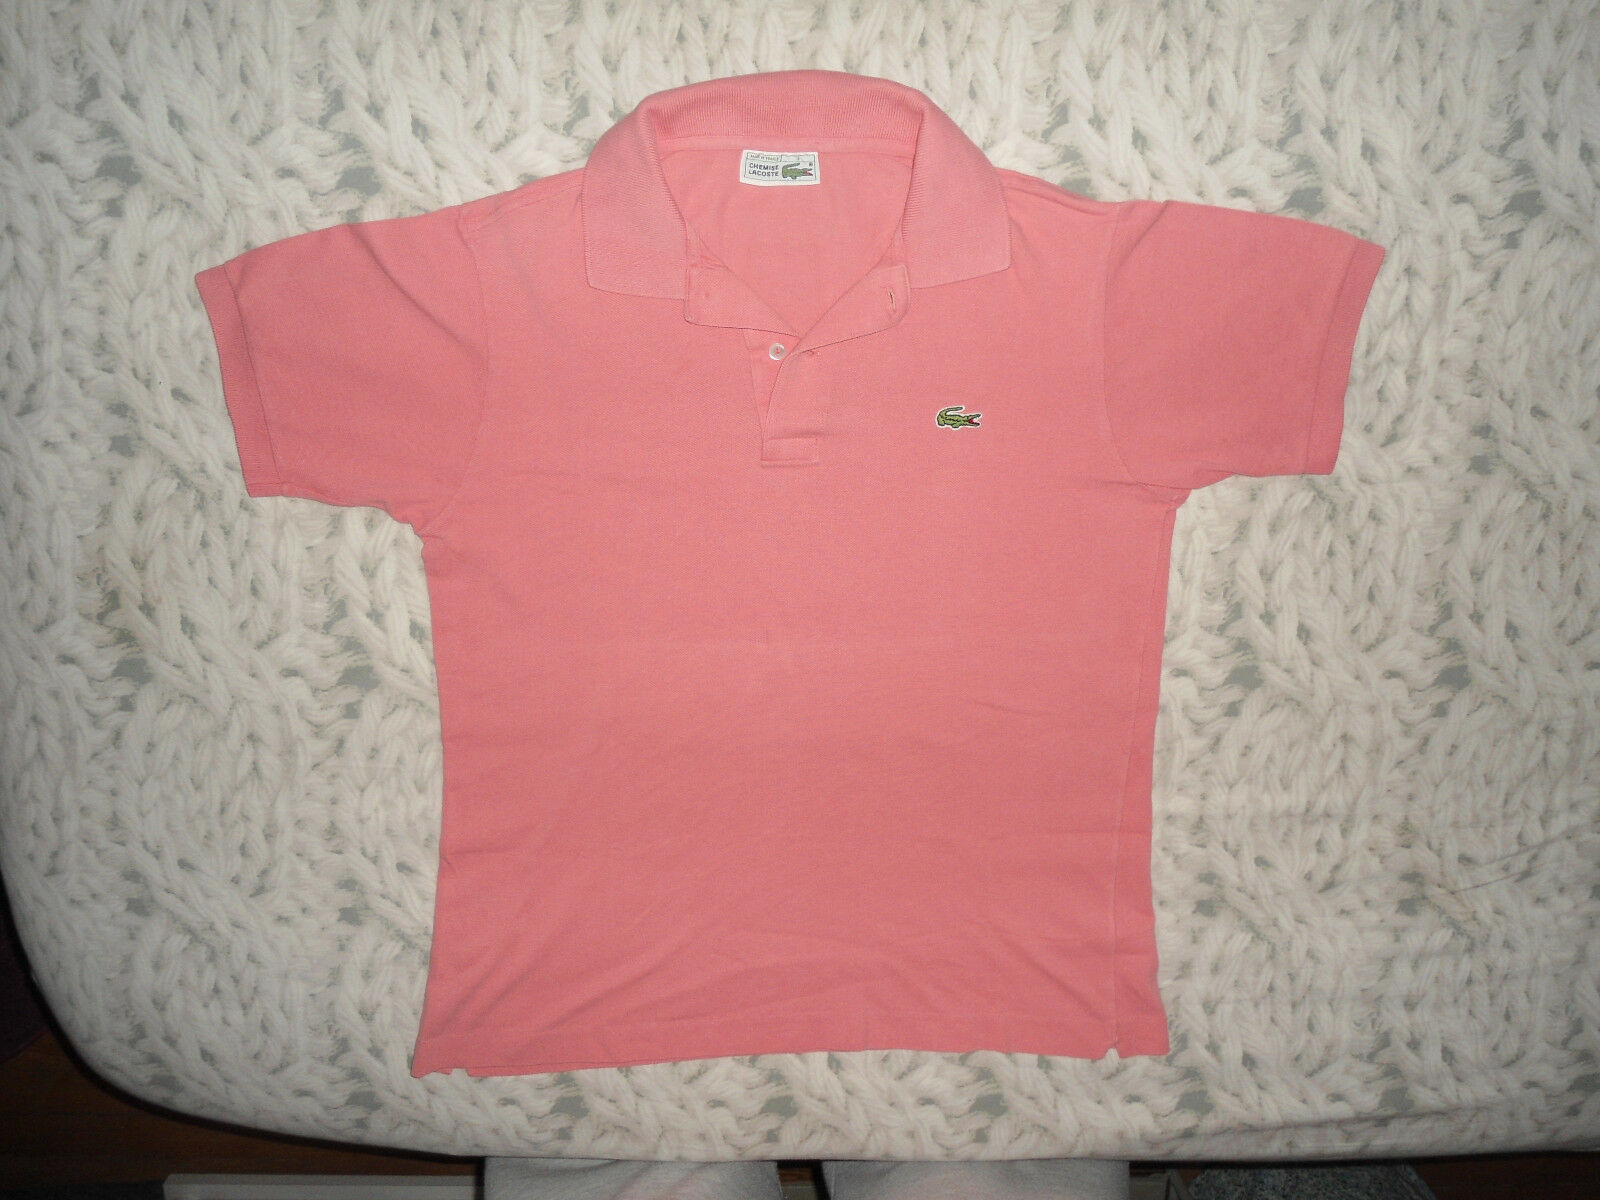 Polo lacoste homme taille 3 s rose superbe etat !